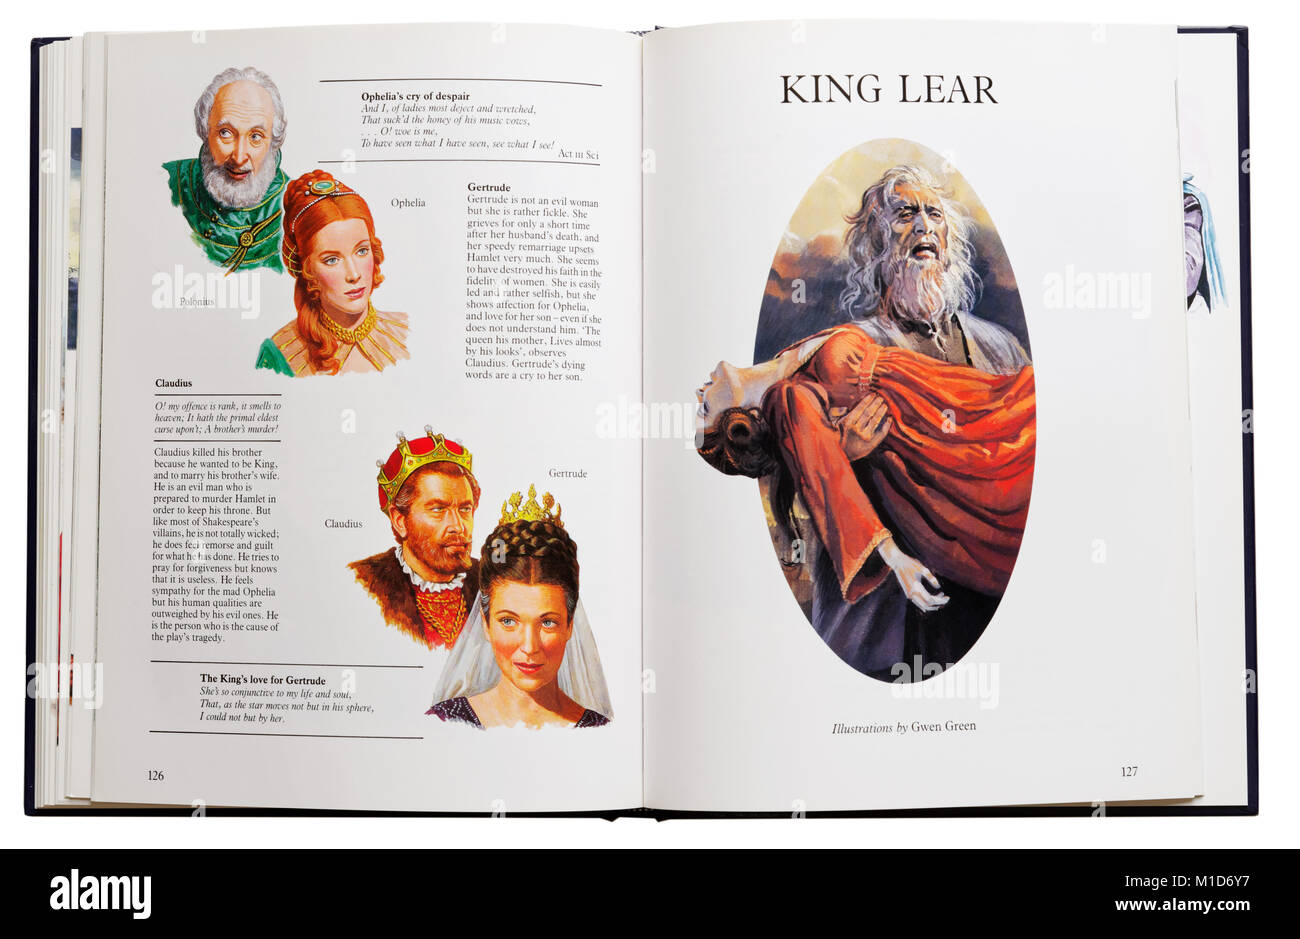 An illustrated book of Shakespeare's plays open at characters from Hamlet and King Lear - Stock Image